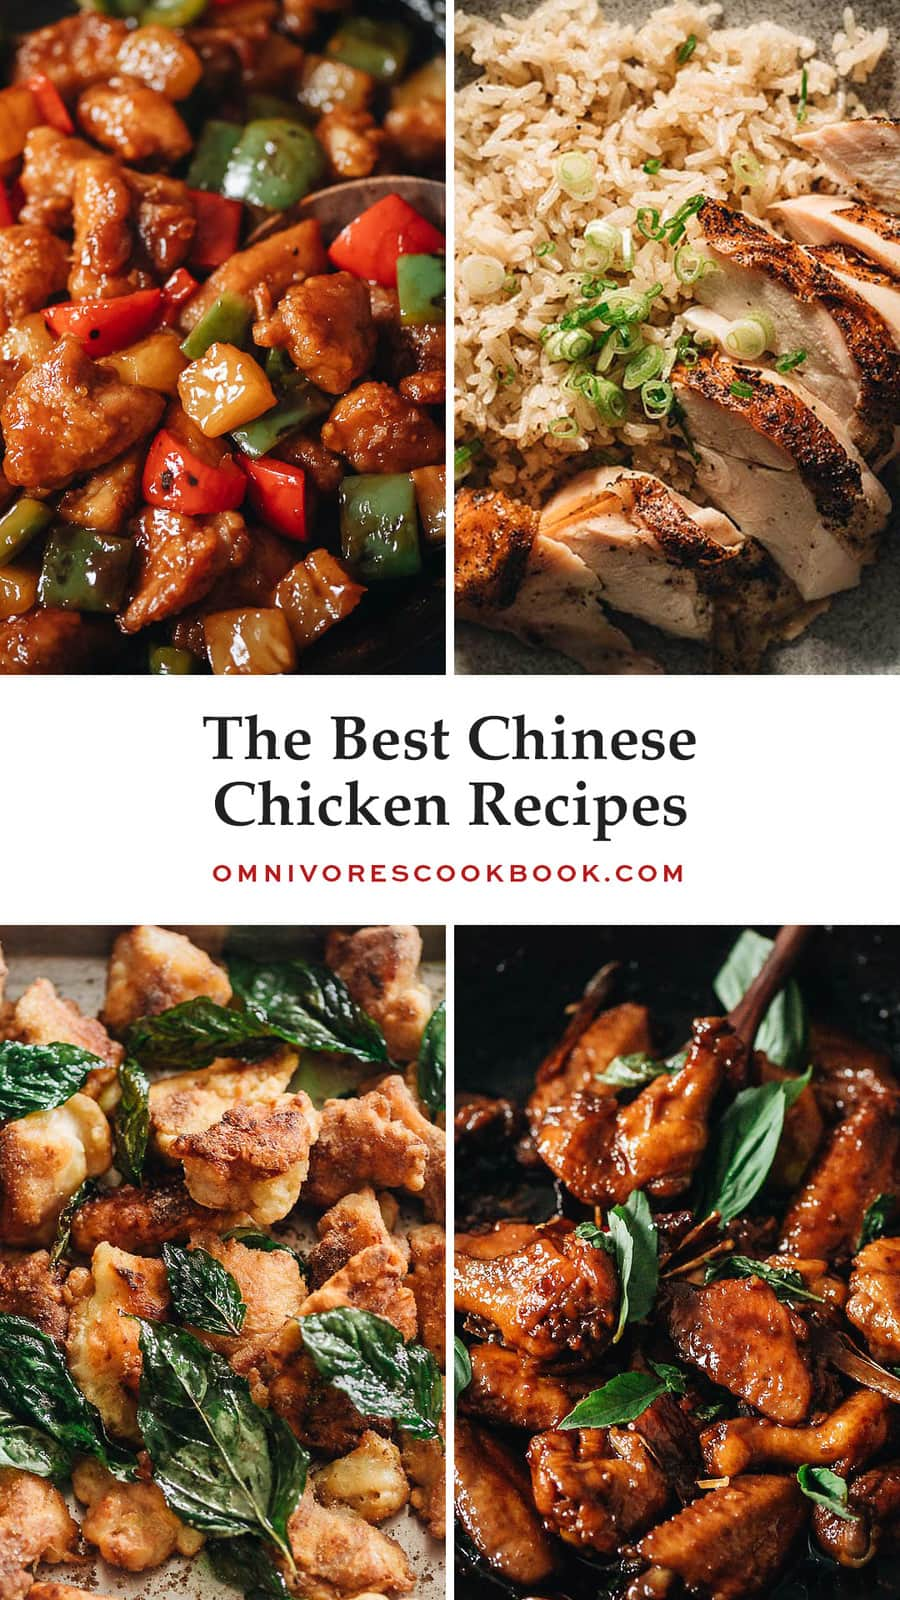 Give tonight's chicken dinner an Asian-inspired makeover with the best Chinese chicken recipes!